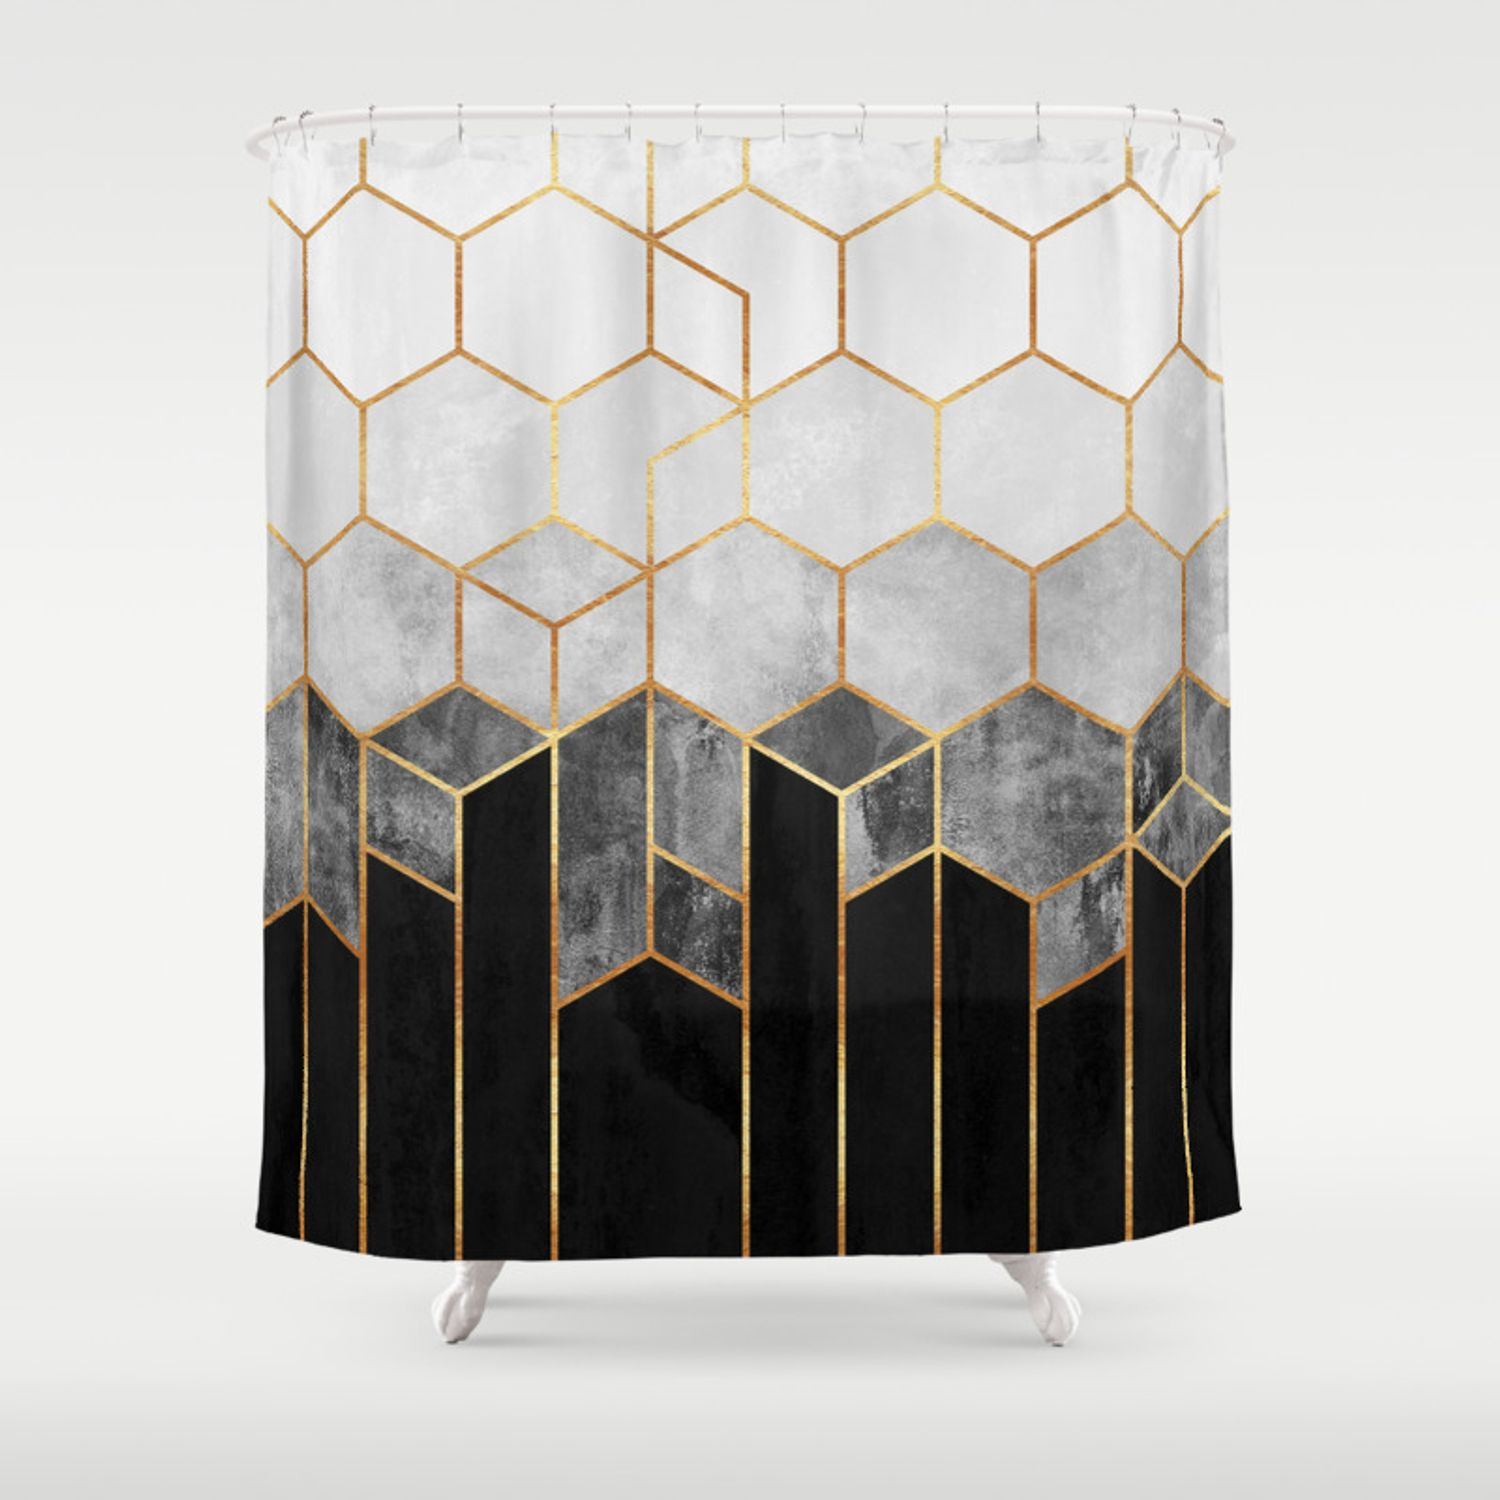 Sweet 12 Amazing Designs Of How To Craft Charcoal Shower Curtain For You In 2020 Geometric Shower Curtain Blue Shower Curtains Unique Shower Curtain